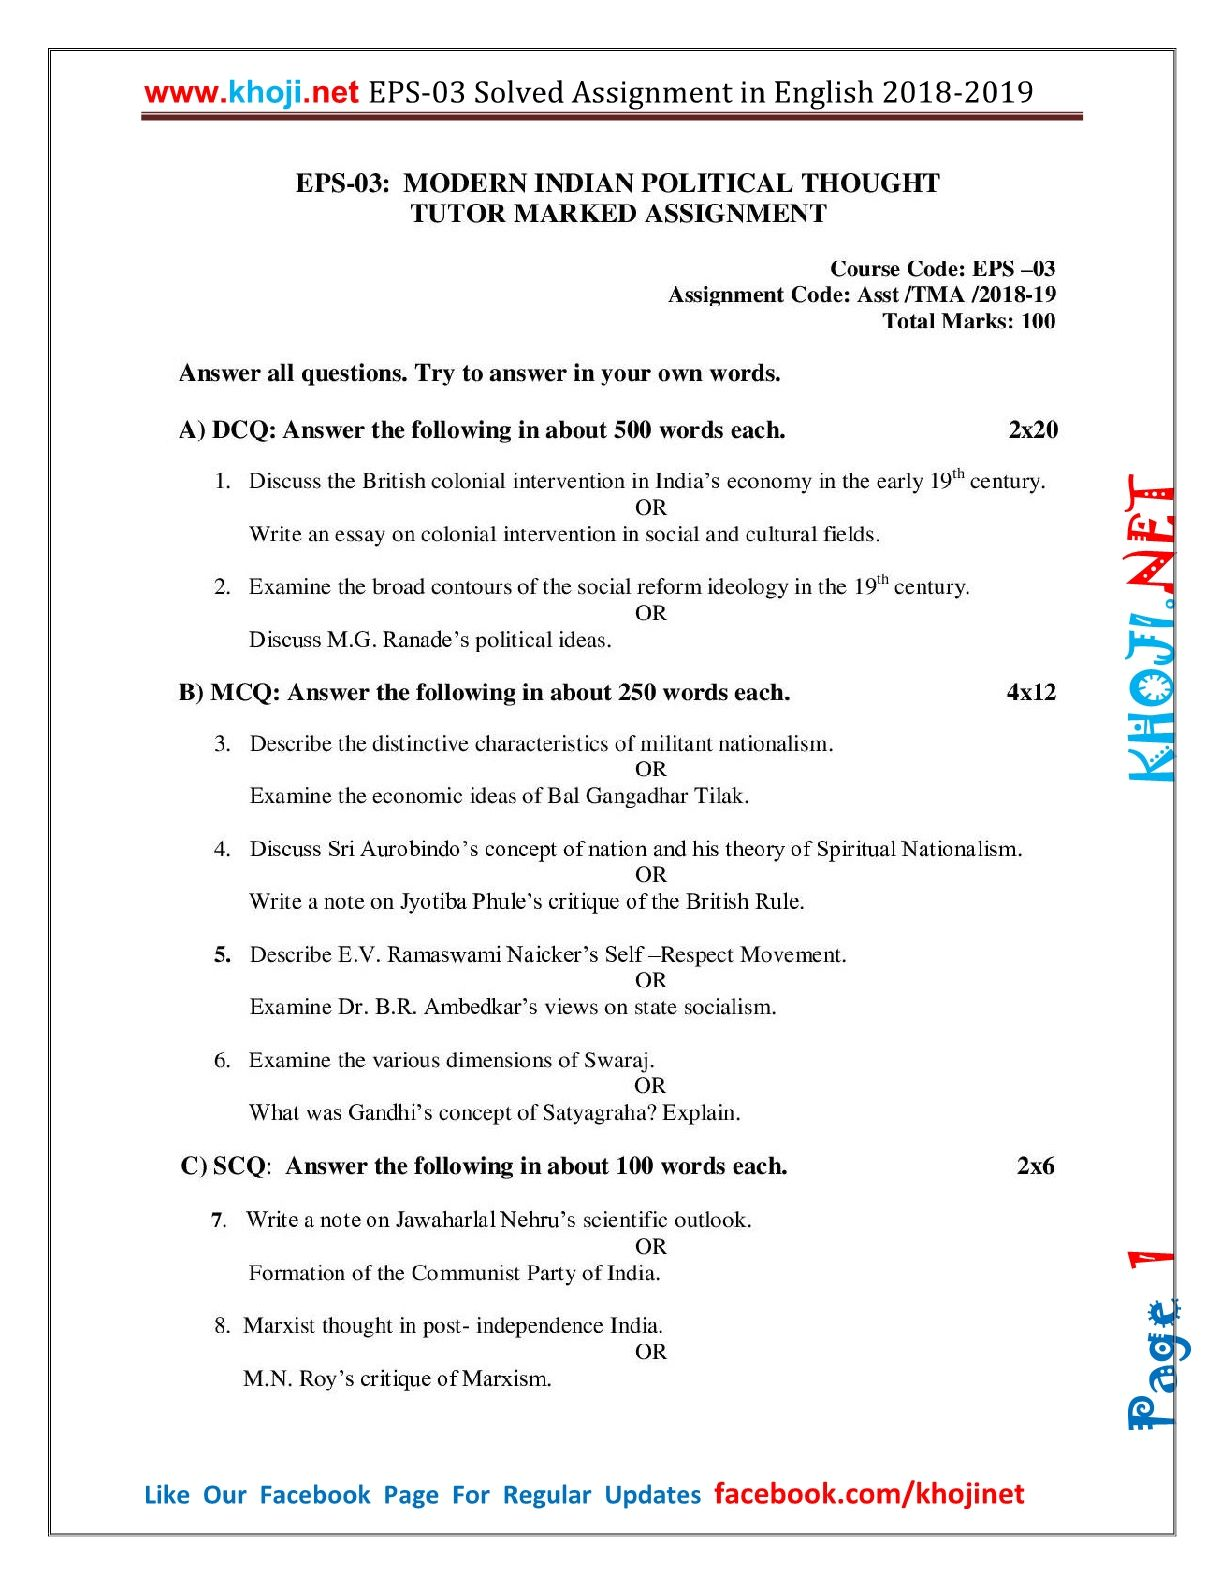 EPS-03 Solved Assignment 2018-19 For IGNOU BA/BDP